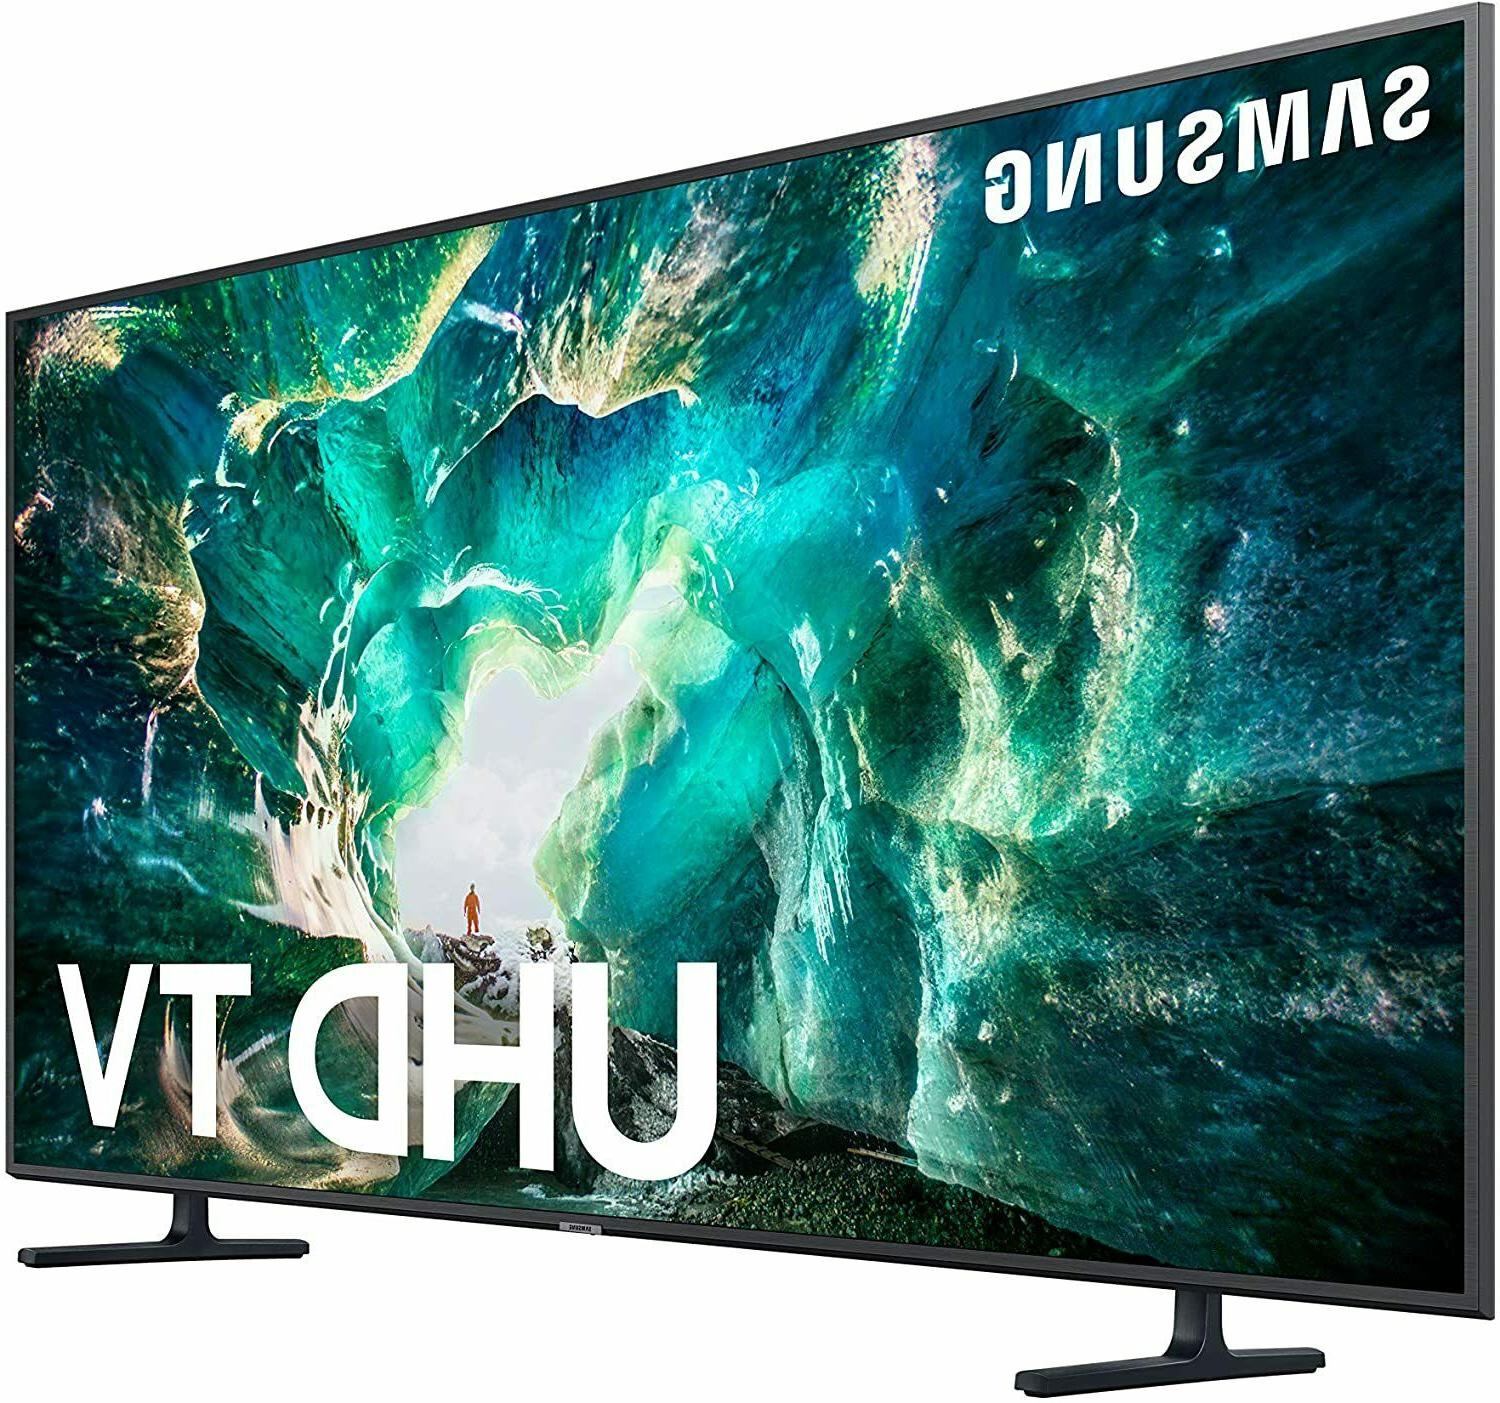 Samsung 75-Inch 8 Smart TV with HDR Alexa Compatibility